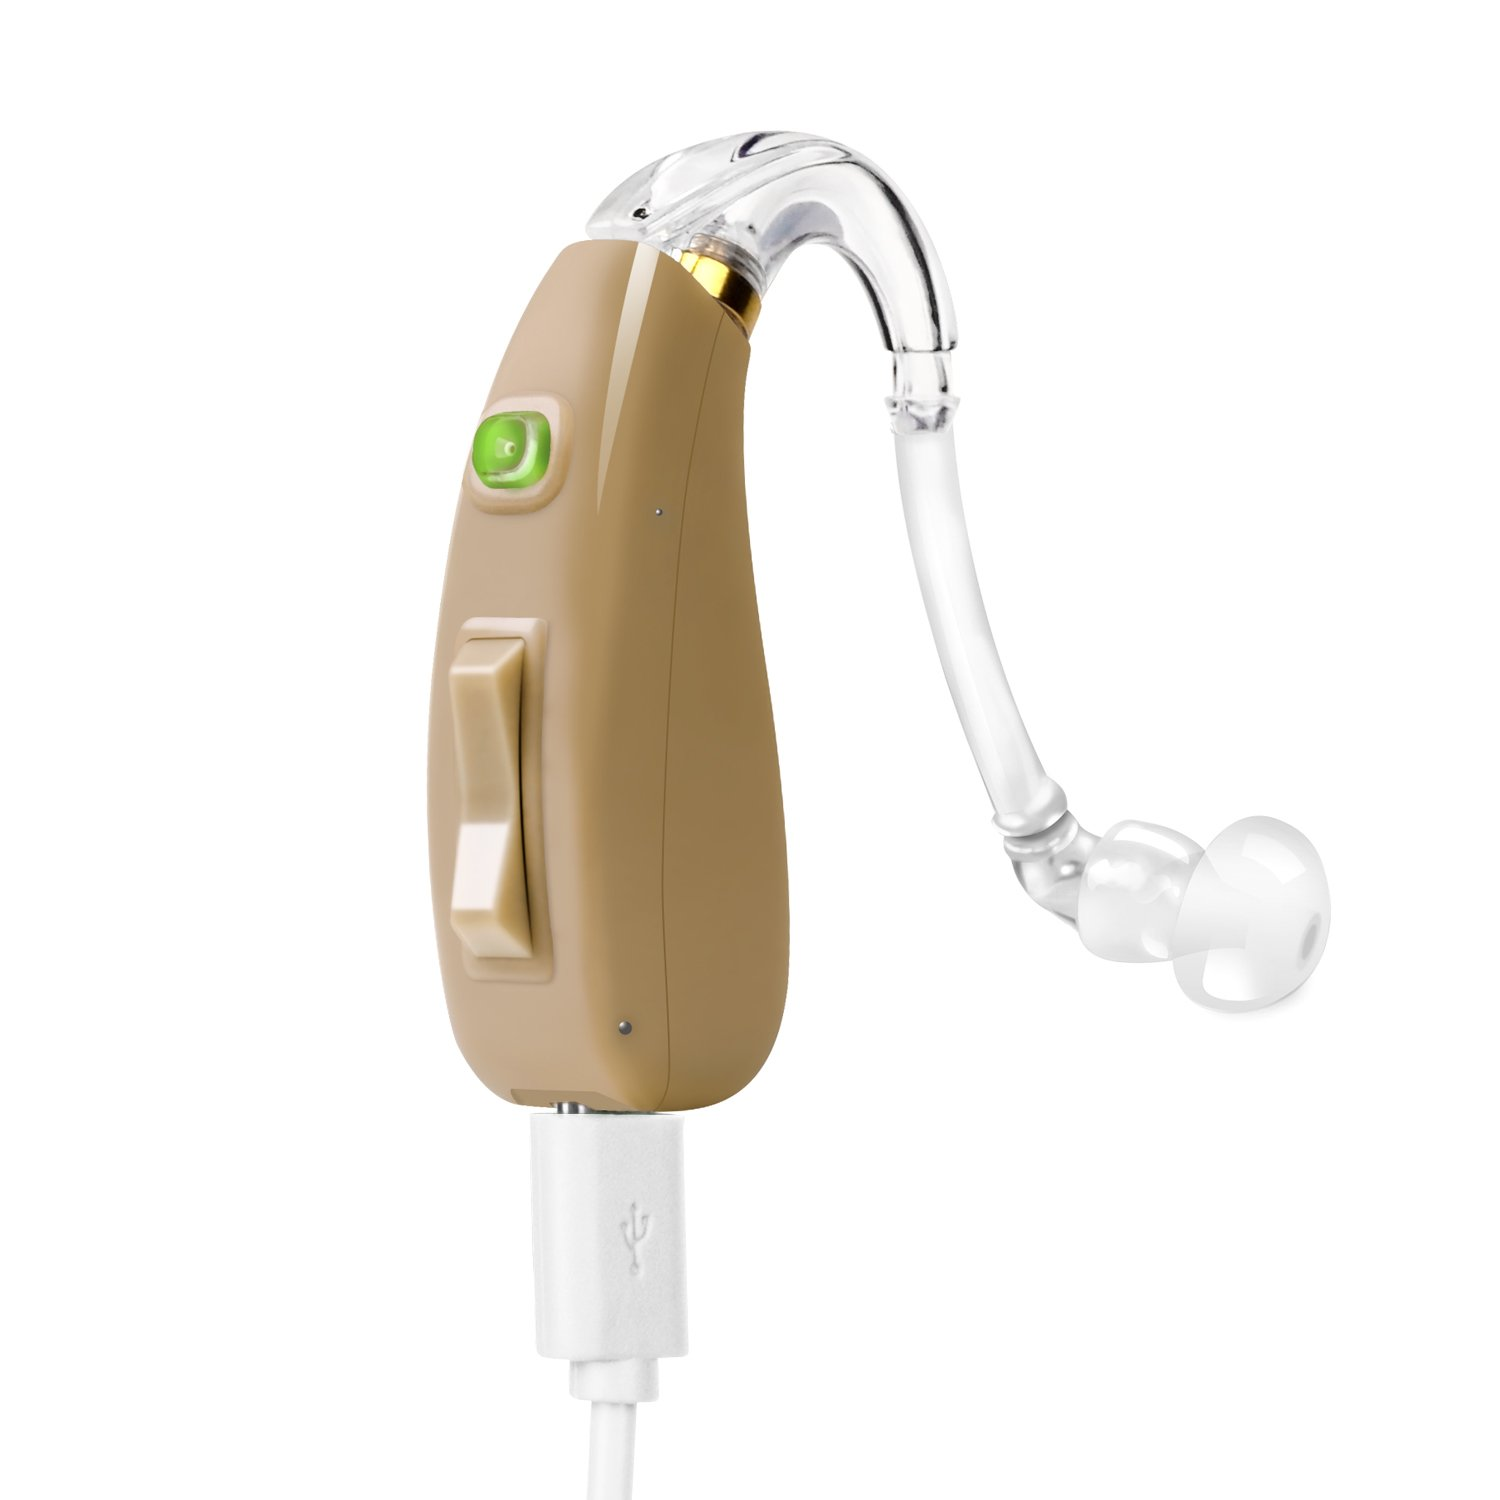 Banglijian Hearing Amplifier Rechargeable Ziv-201 ''FDA Approved'' High Quality Digital BTE Small Size by Banglijian